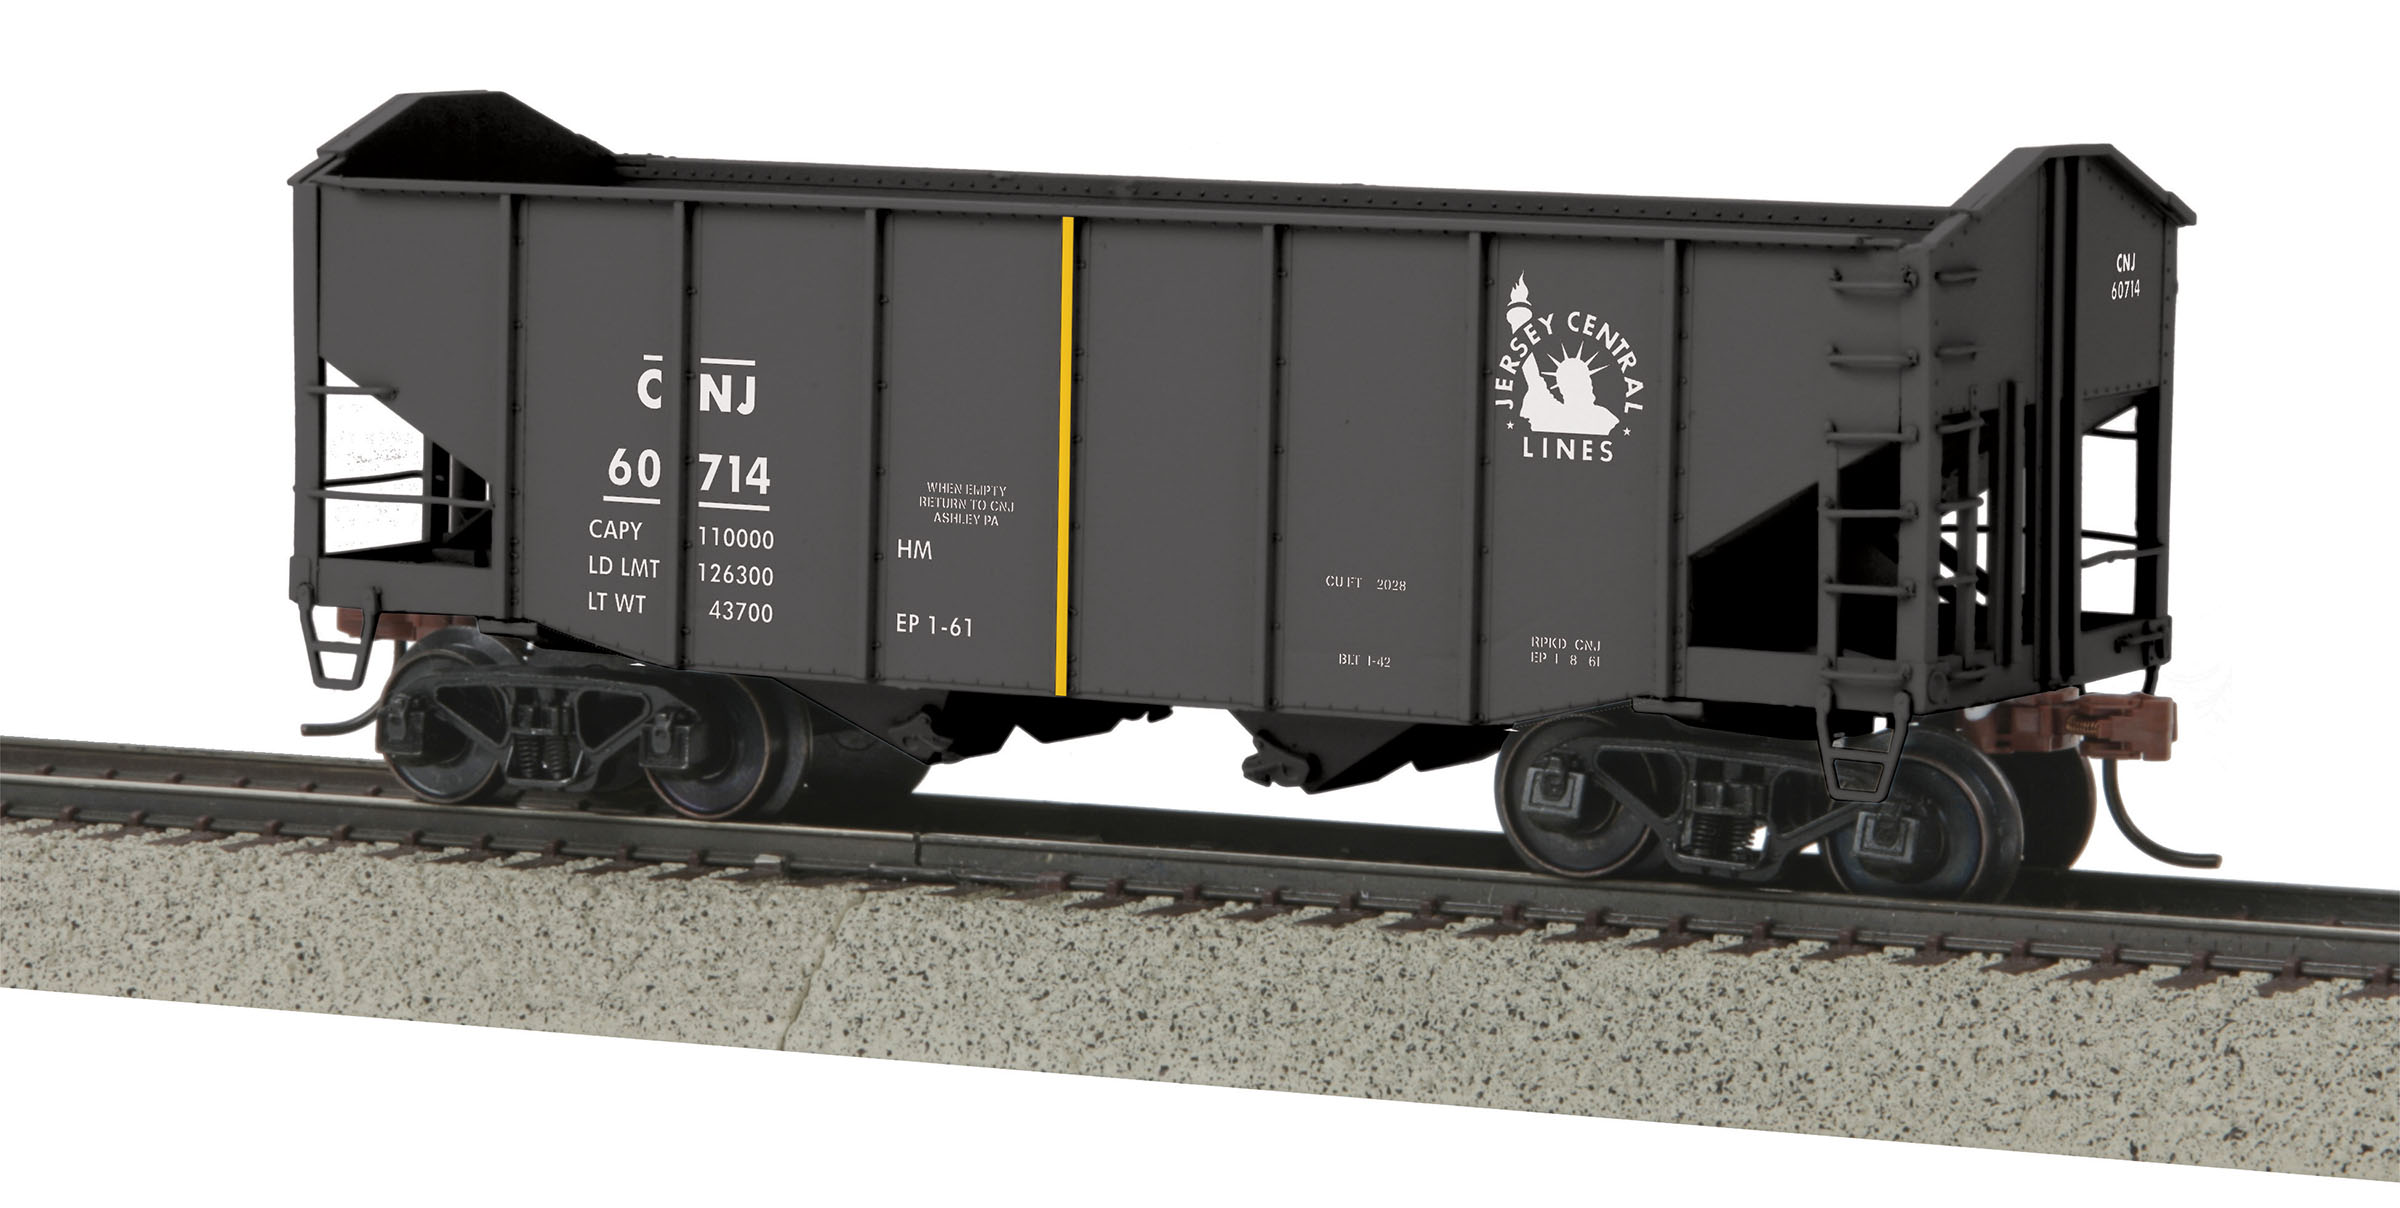 MTH 3575058 2Bay Fish Belly Hopper Hi-Rail Wheel CNJ #60714